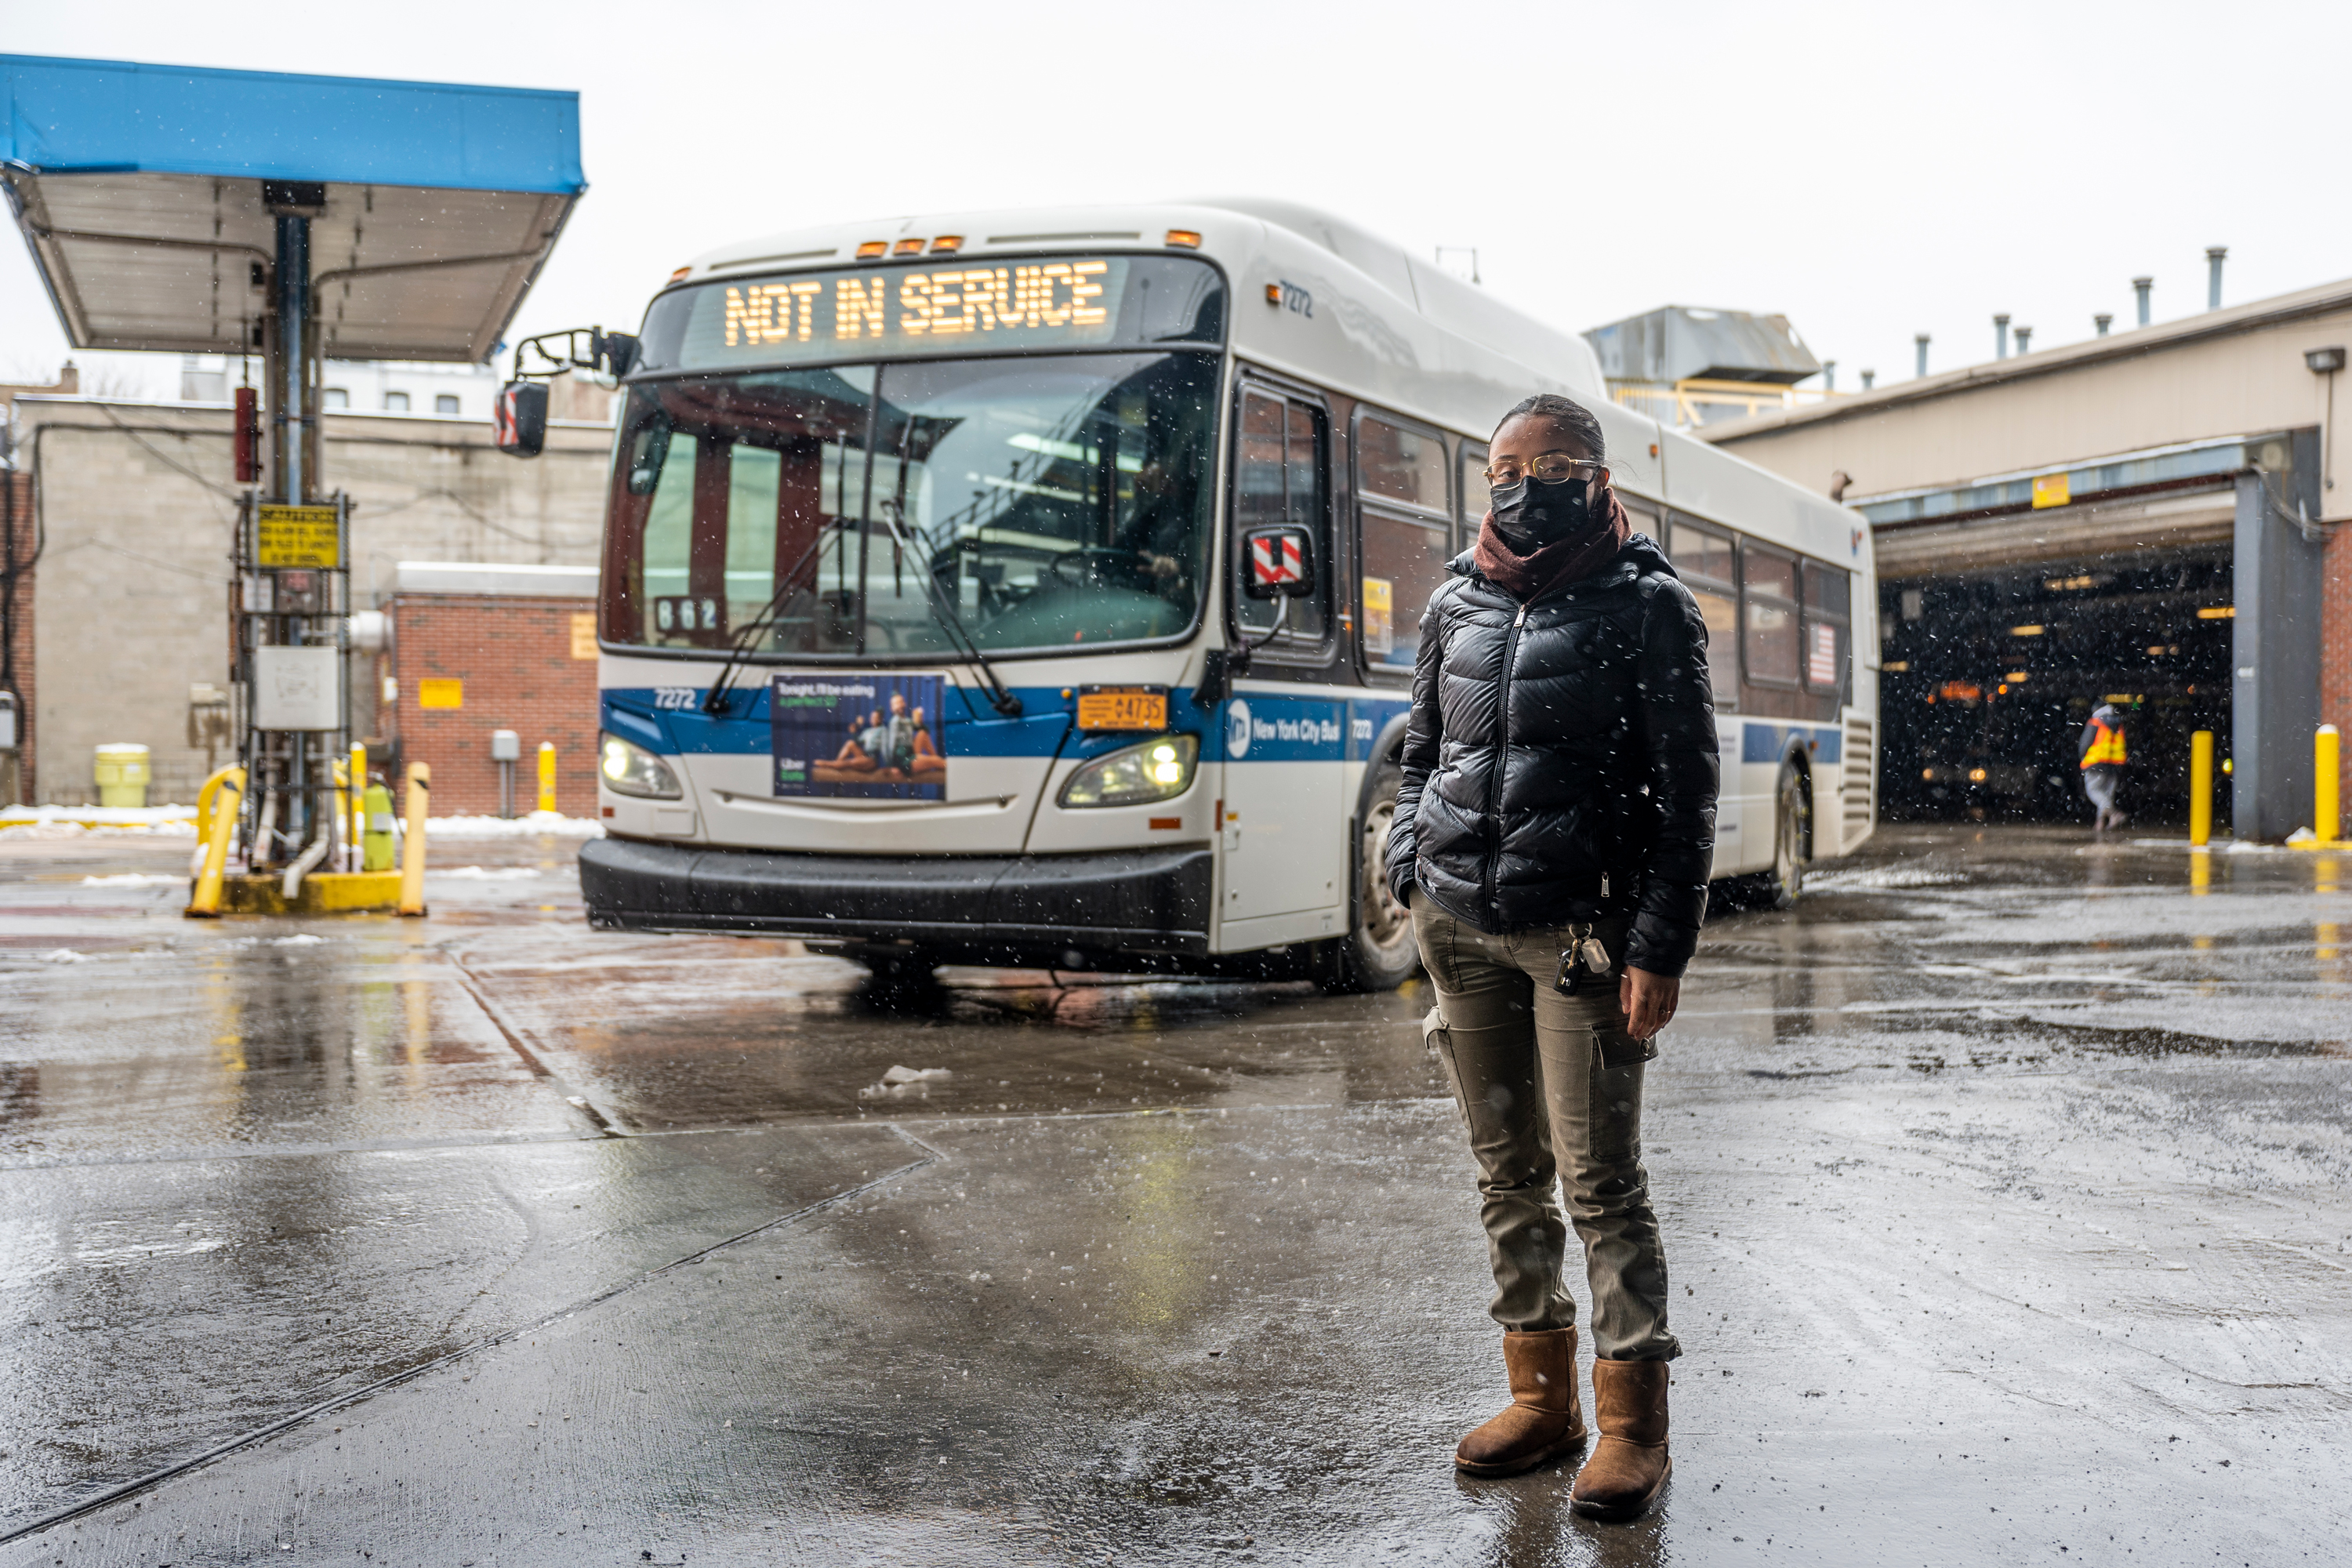 Sandra Diaz has been taking part in an MTA mechanical apprenticeship at the Fresh Pond bus depot, Feb. 19, 2021.